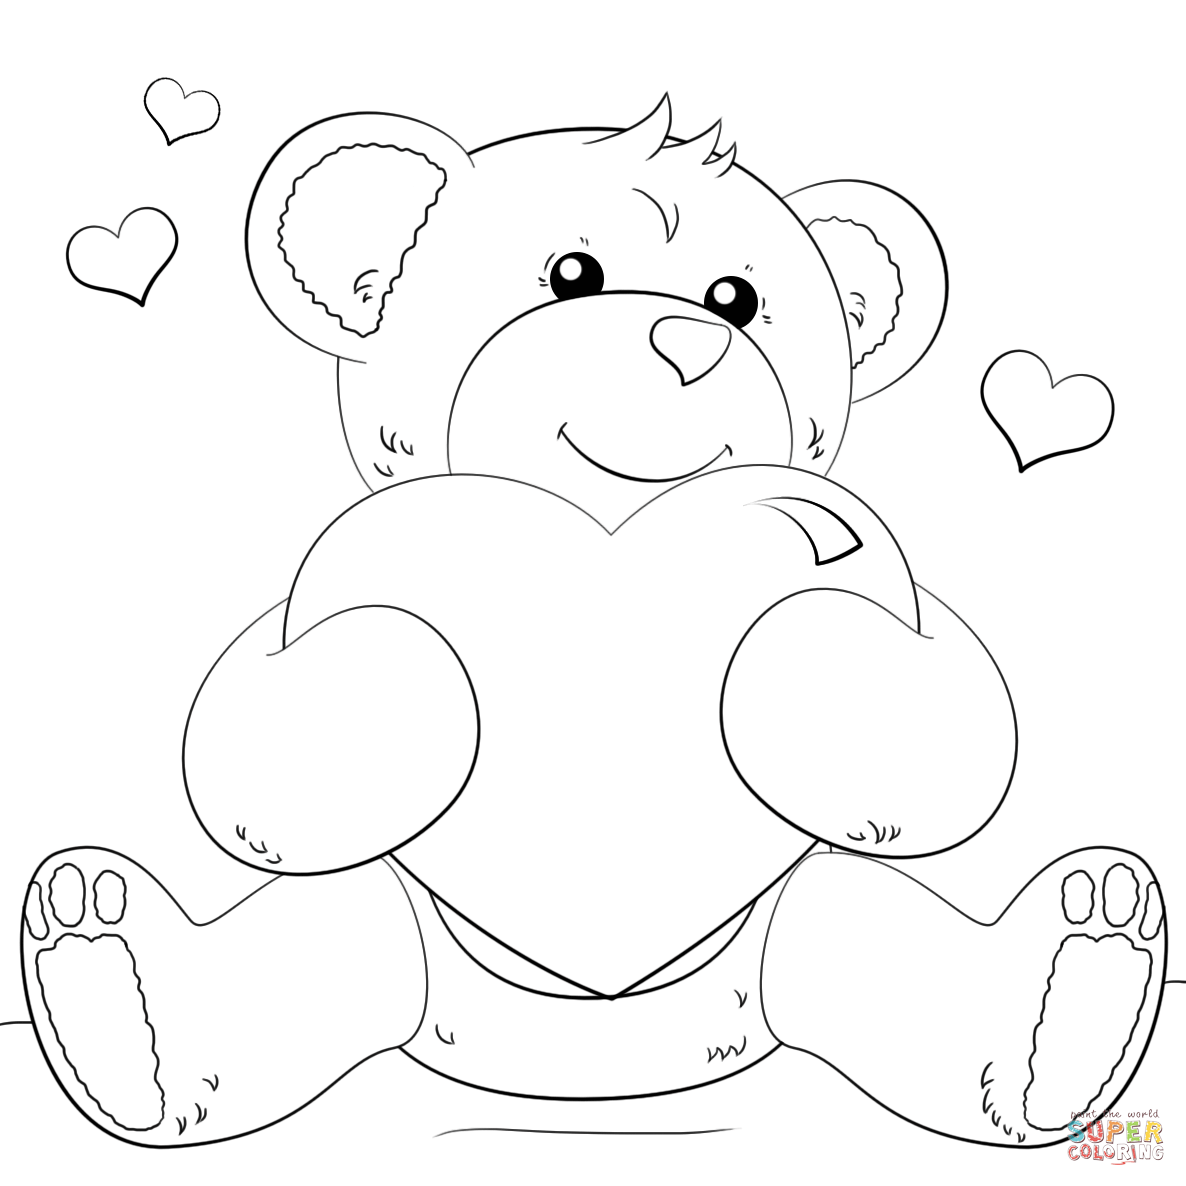 1186x1186 Cute Bear With Heart Coloring Page Free Printable Coloring Pages